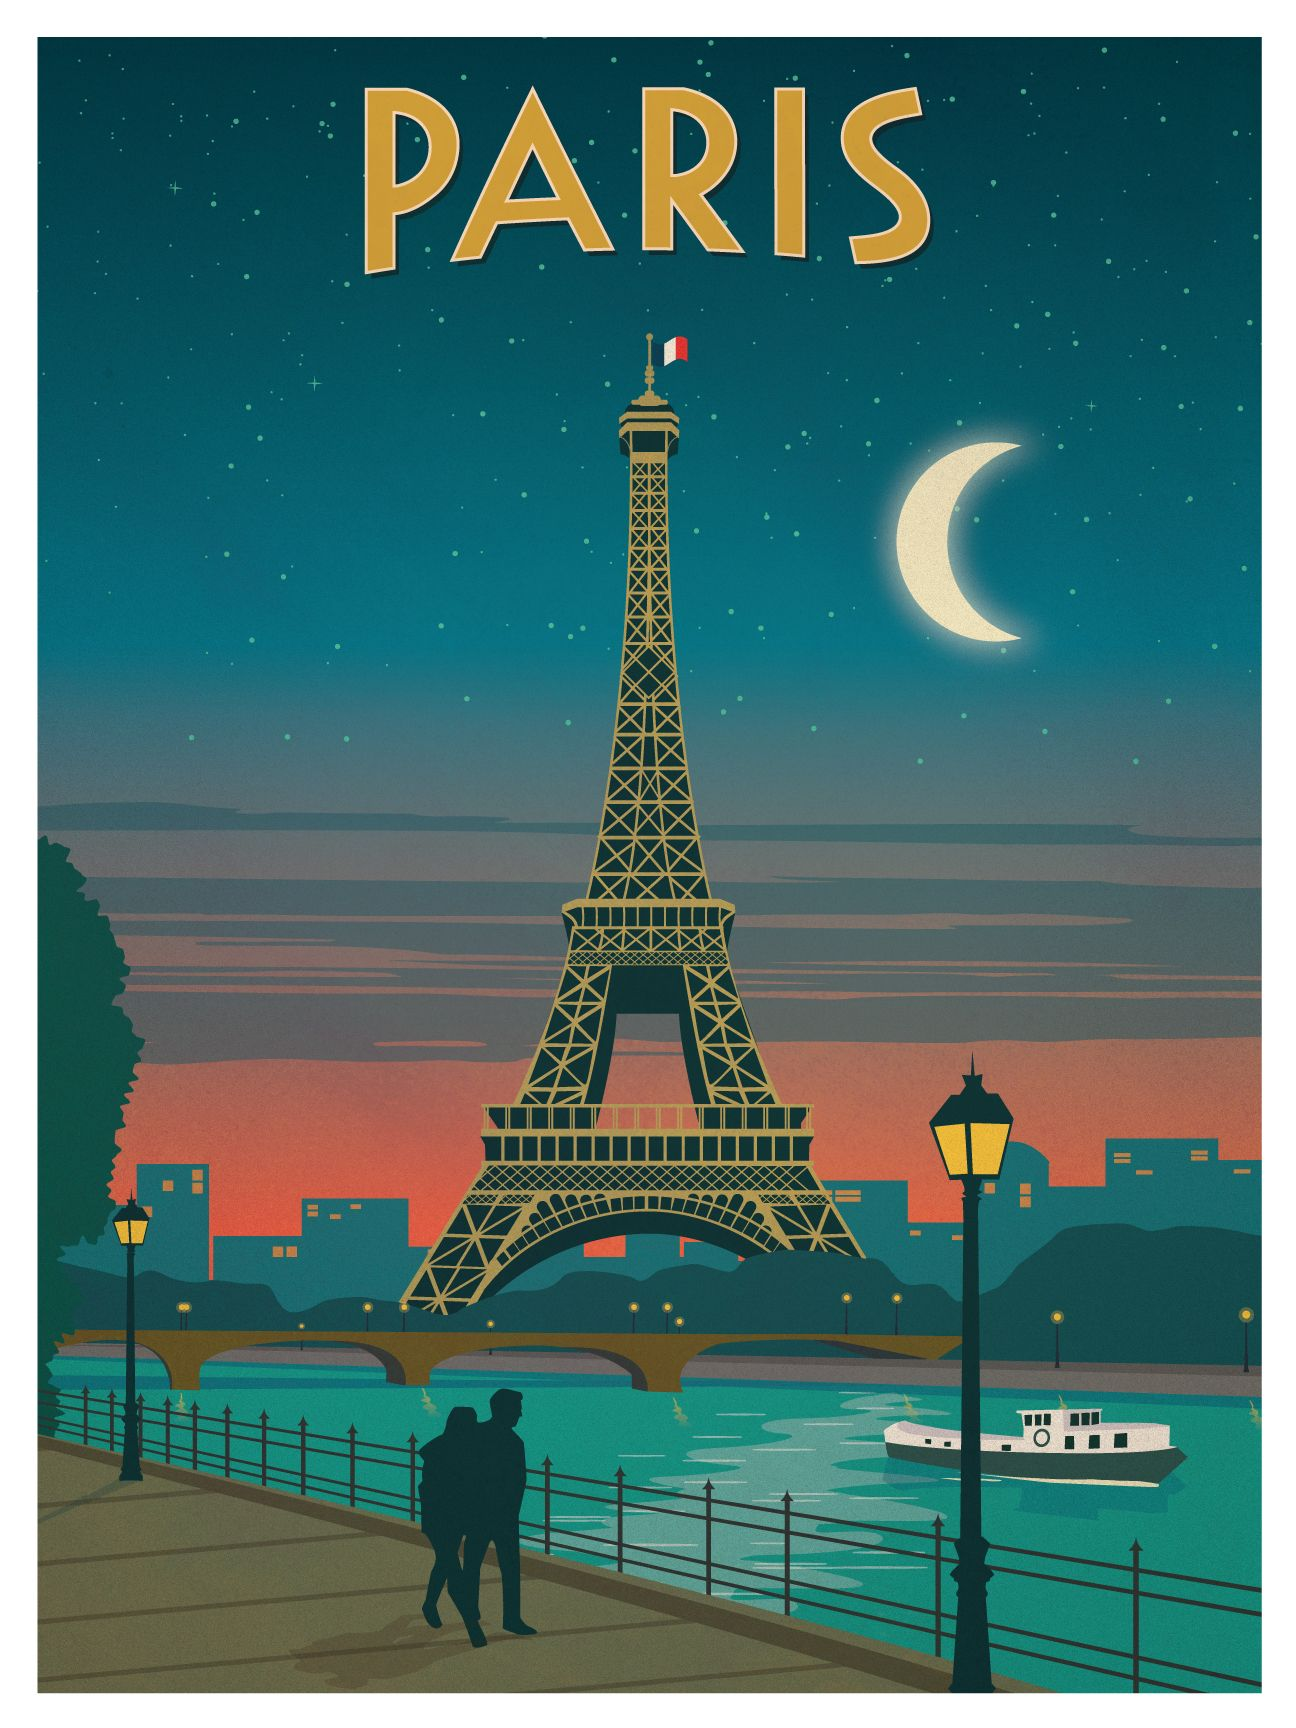 Illustrations Posters, Art Posters, Railway Posters, Poster Designs, Vintage Paris,